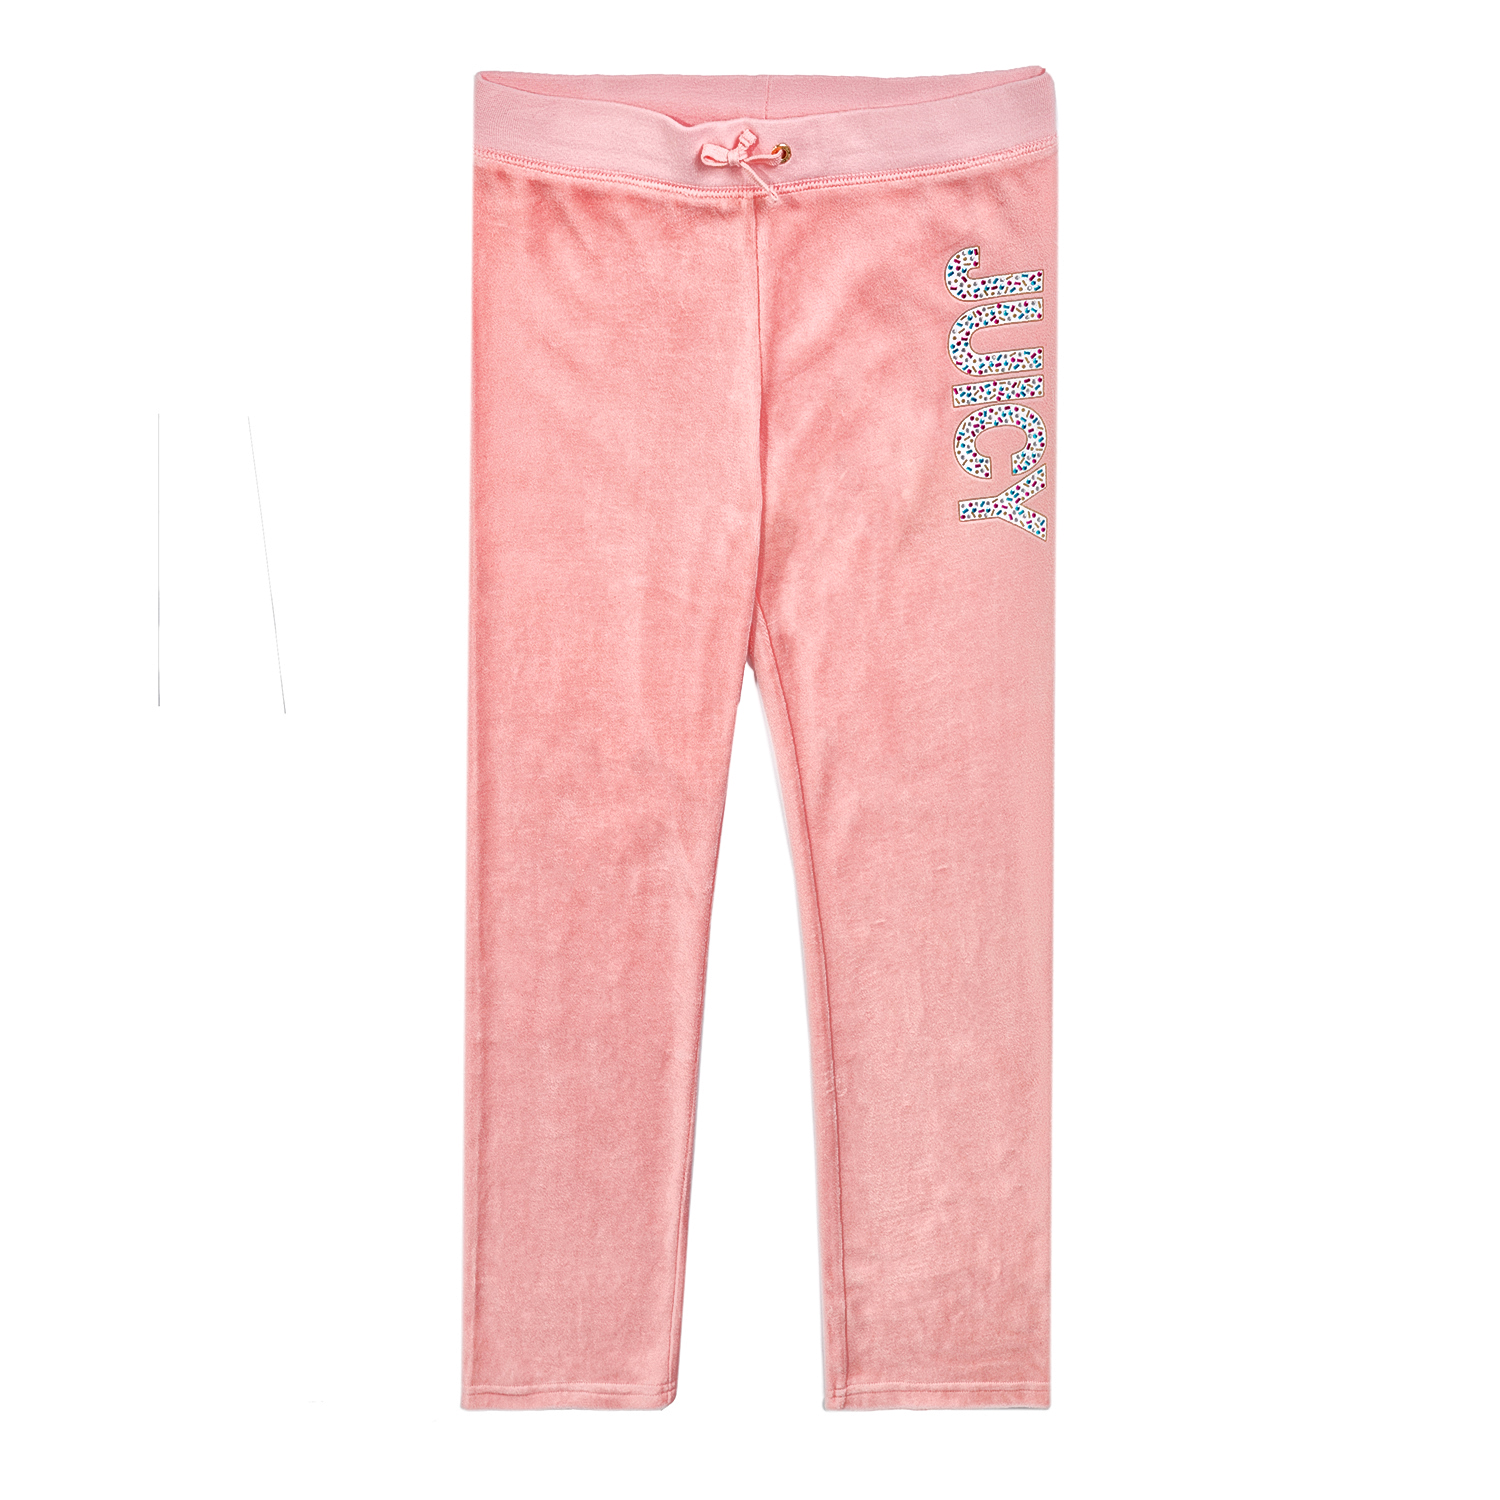 JUICY COUTURE KIDS - Κοριτσίστικο παντελόνι φόρμας JUICY COUTURE GLAM SPRINKLES  παιδικά girls ρούχα παντελόνια